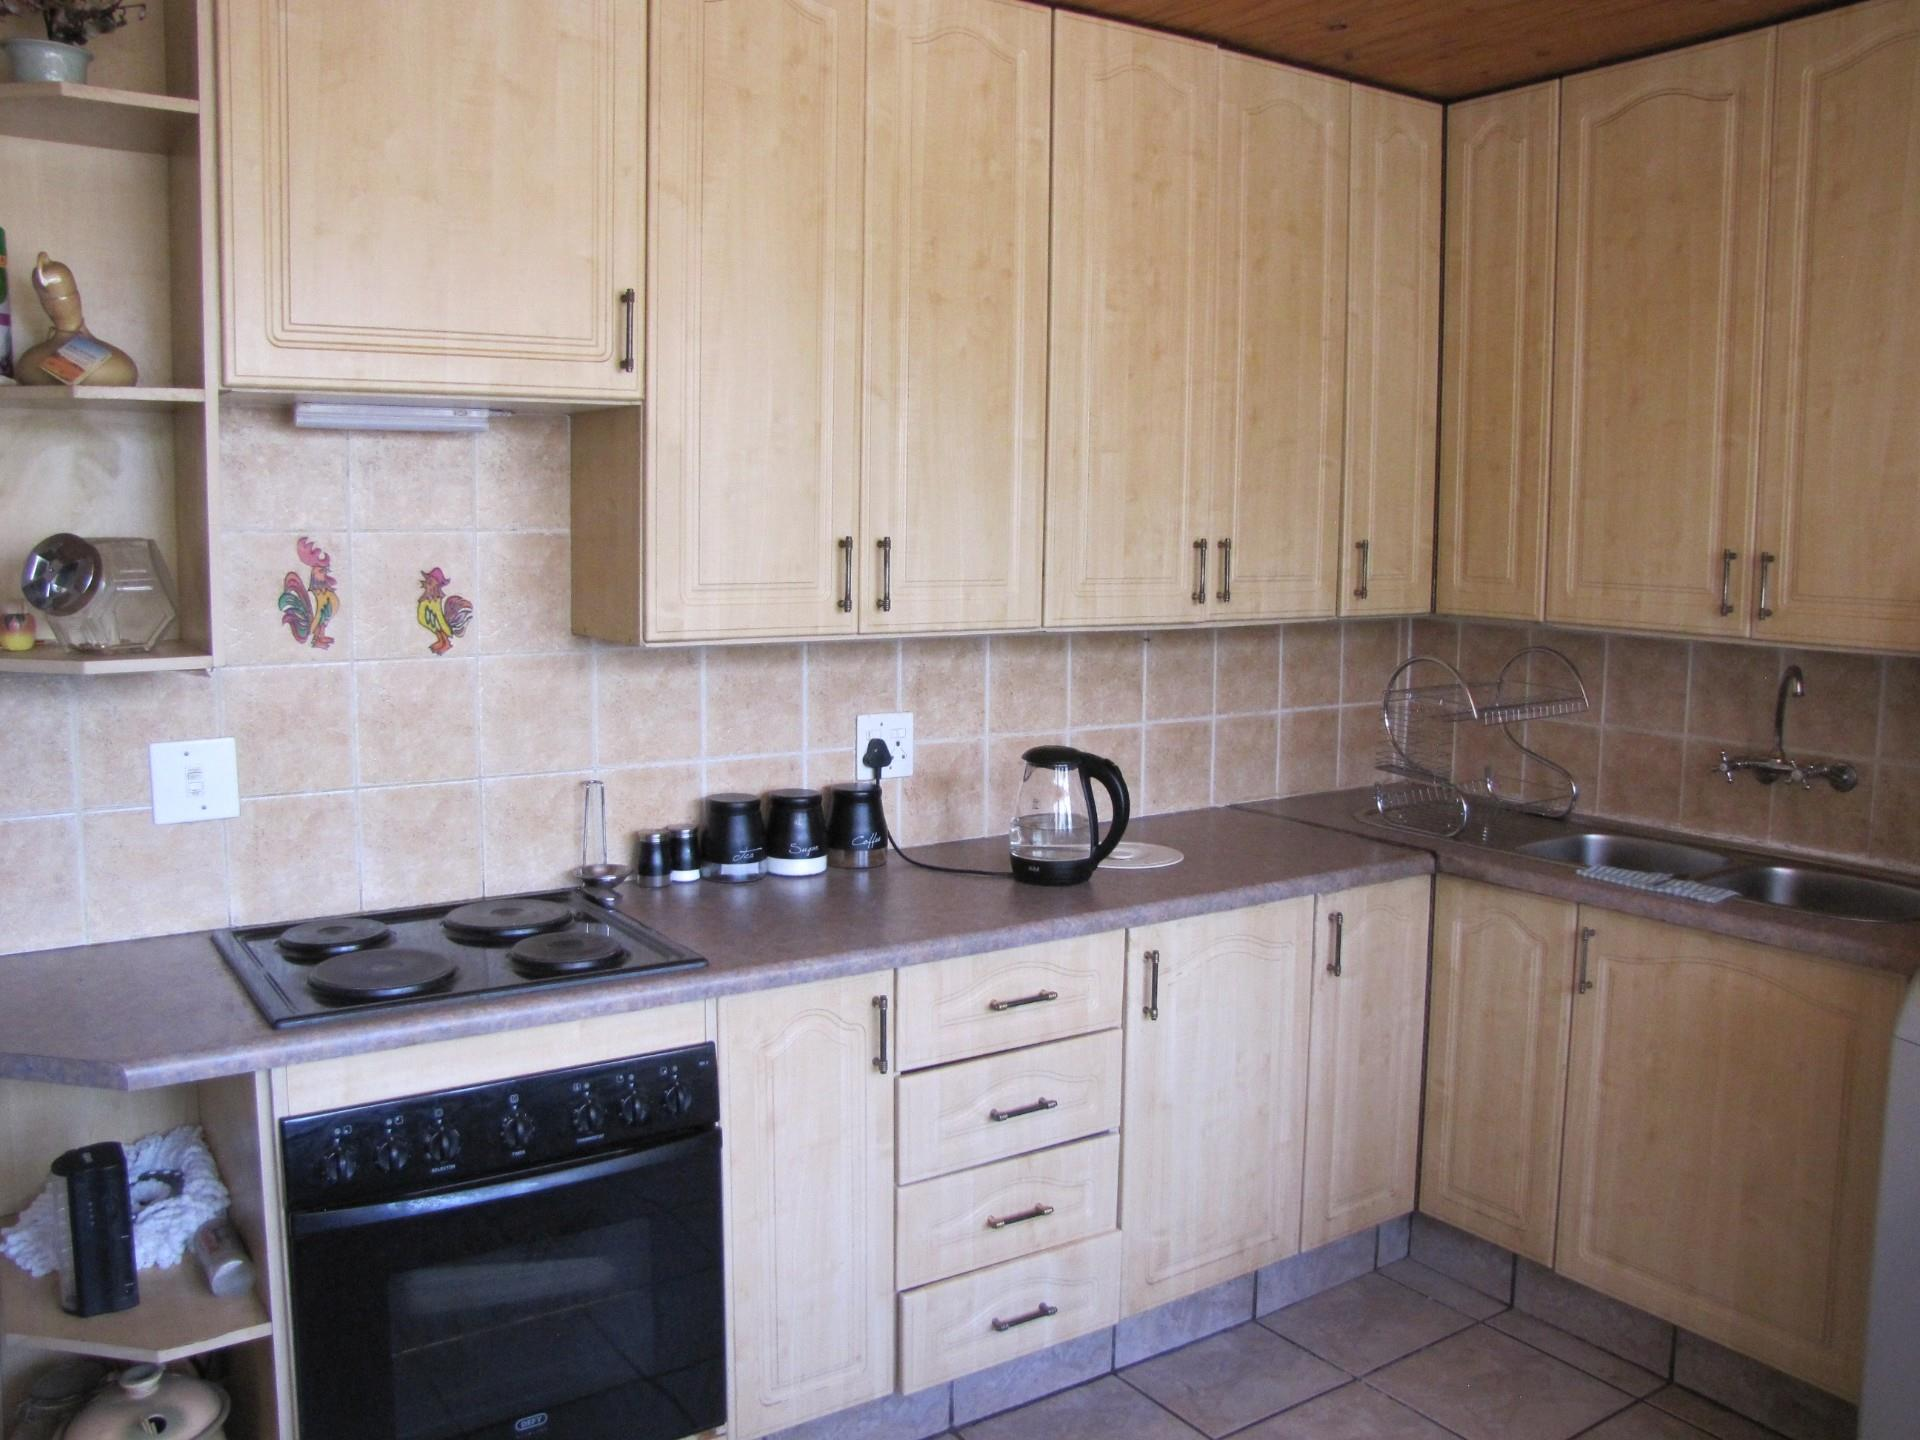 2 Bedroom Apartment / Flat For Sale in Three Rivers Proper